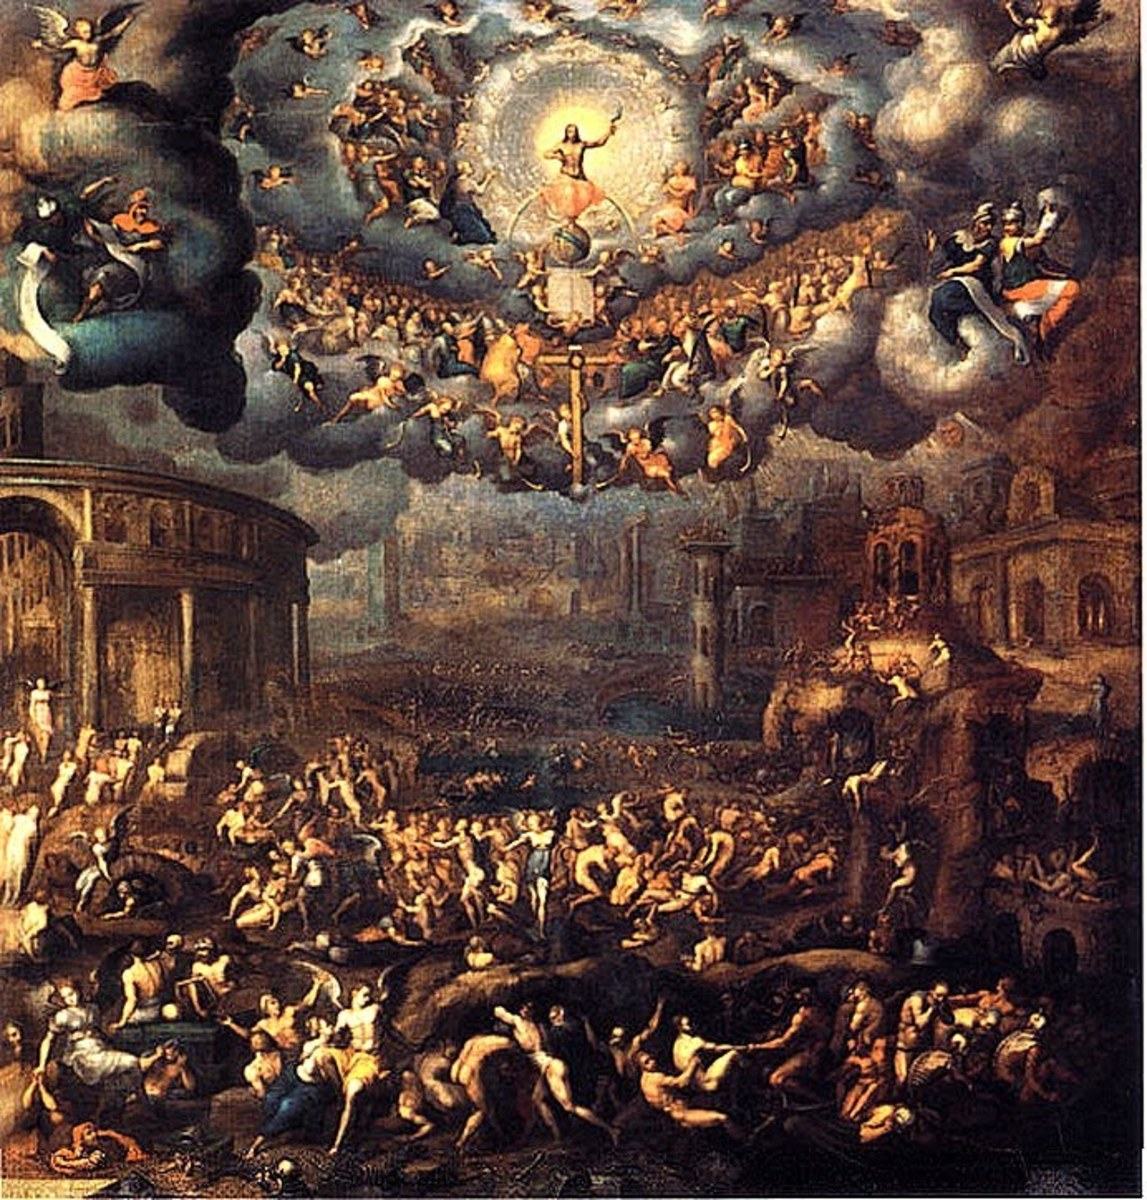 """THE LAST JUDGMENT"" BY JEAN COUSIN"